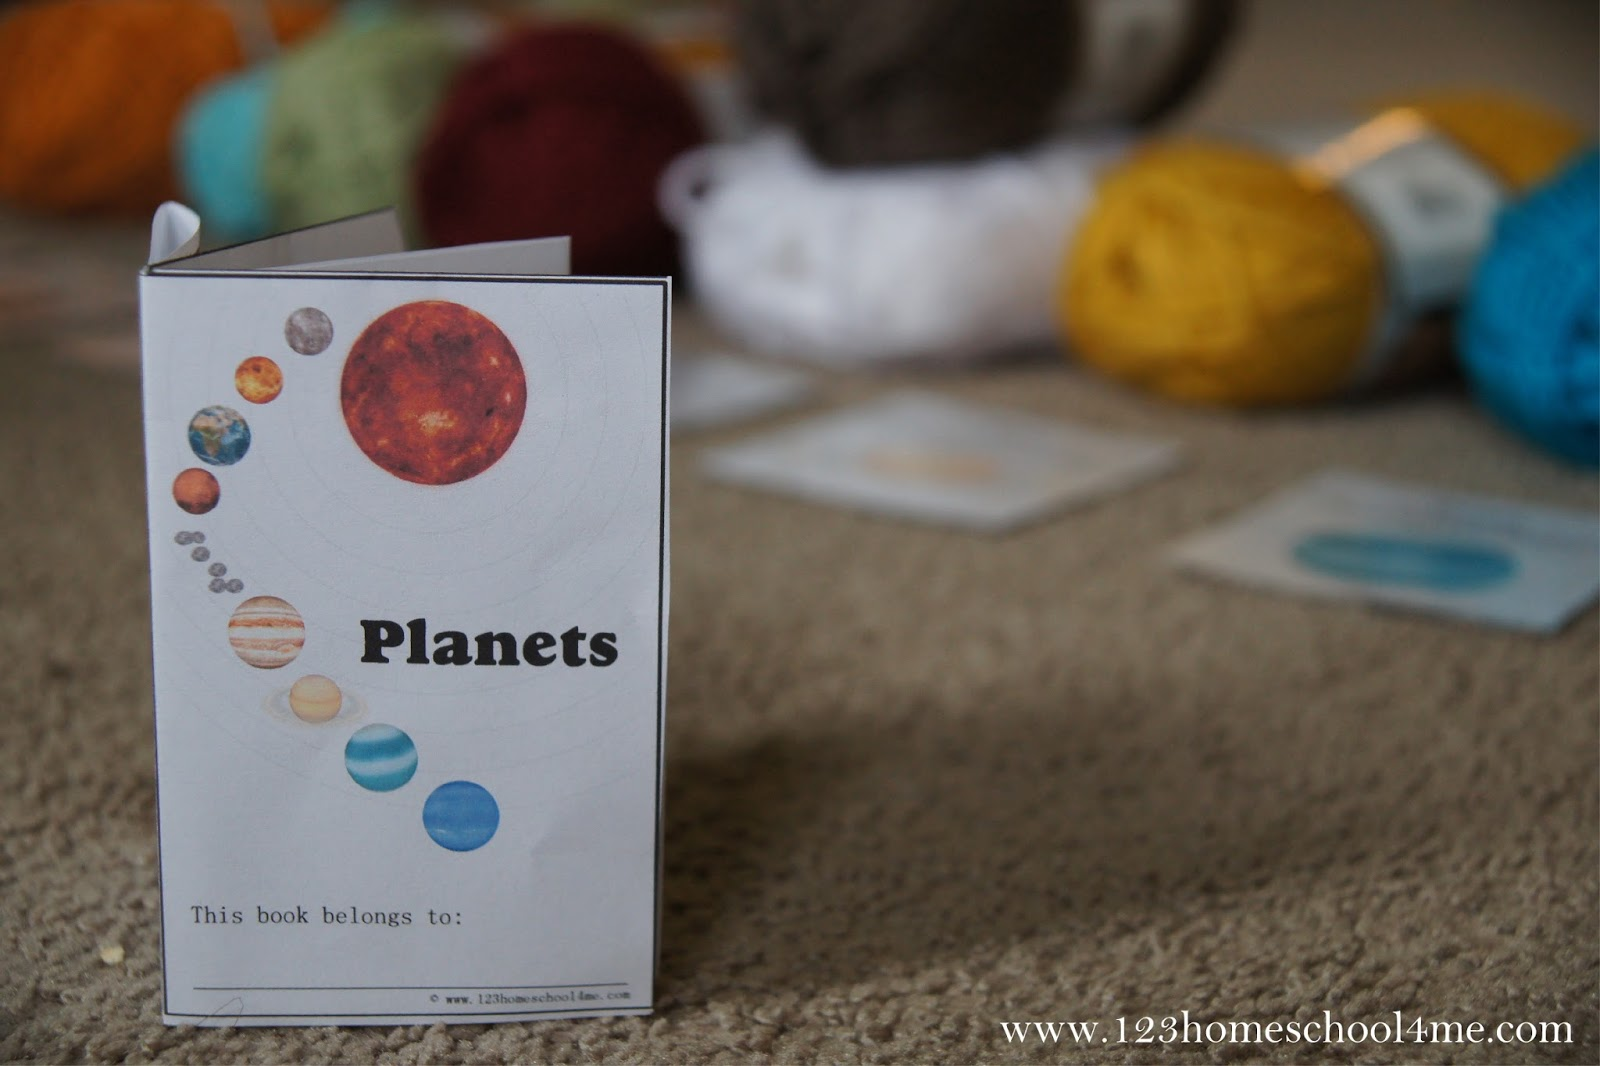 planets free printable book to teach kids about the solar system - Free Printable Books For Kids